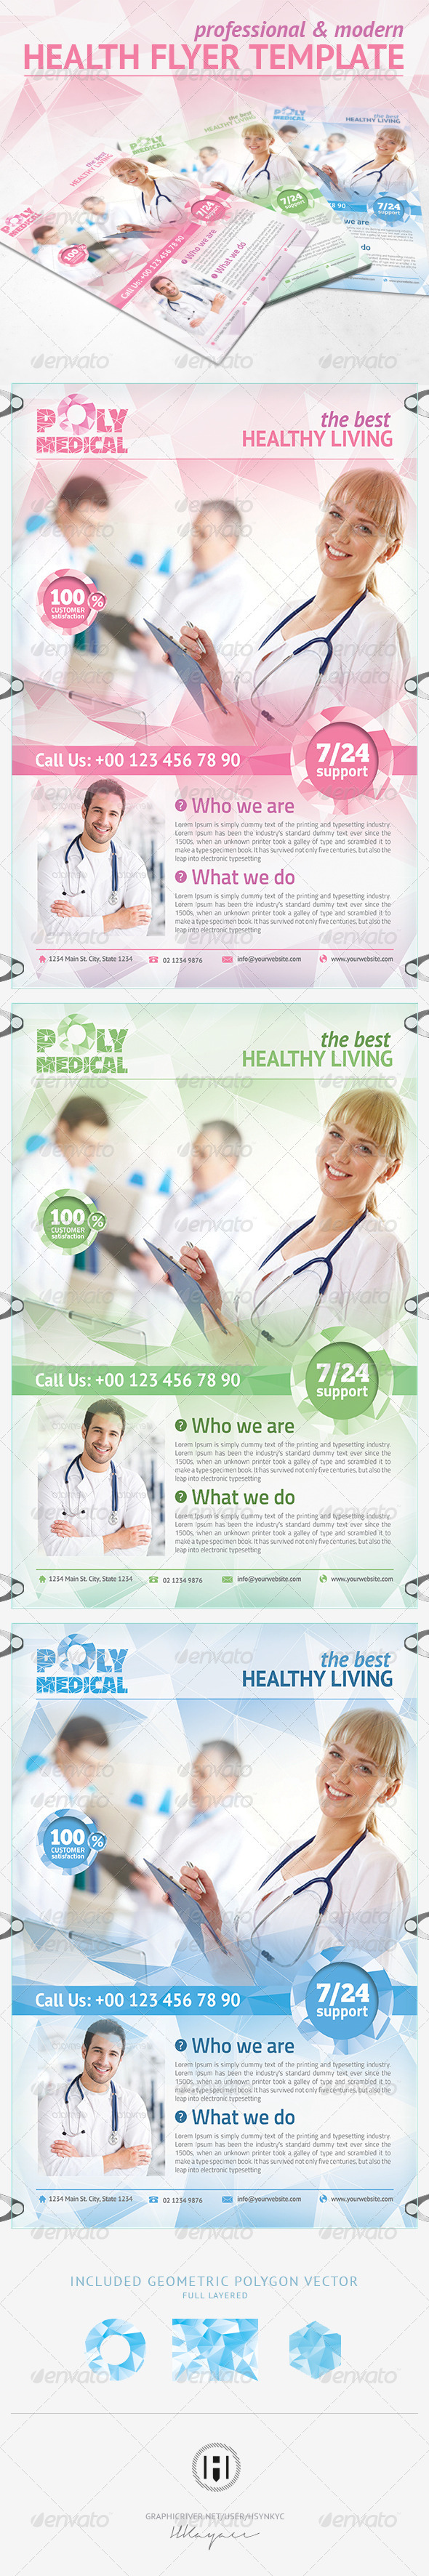 Health Flyer Template Polygon Design